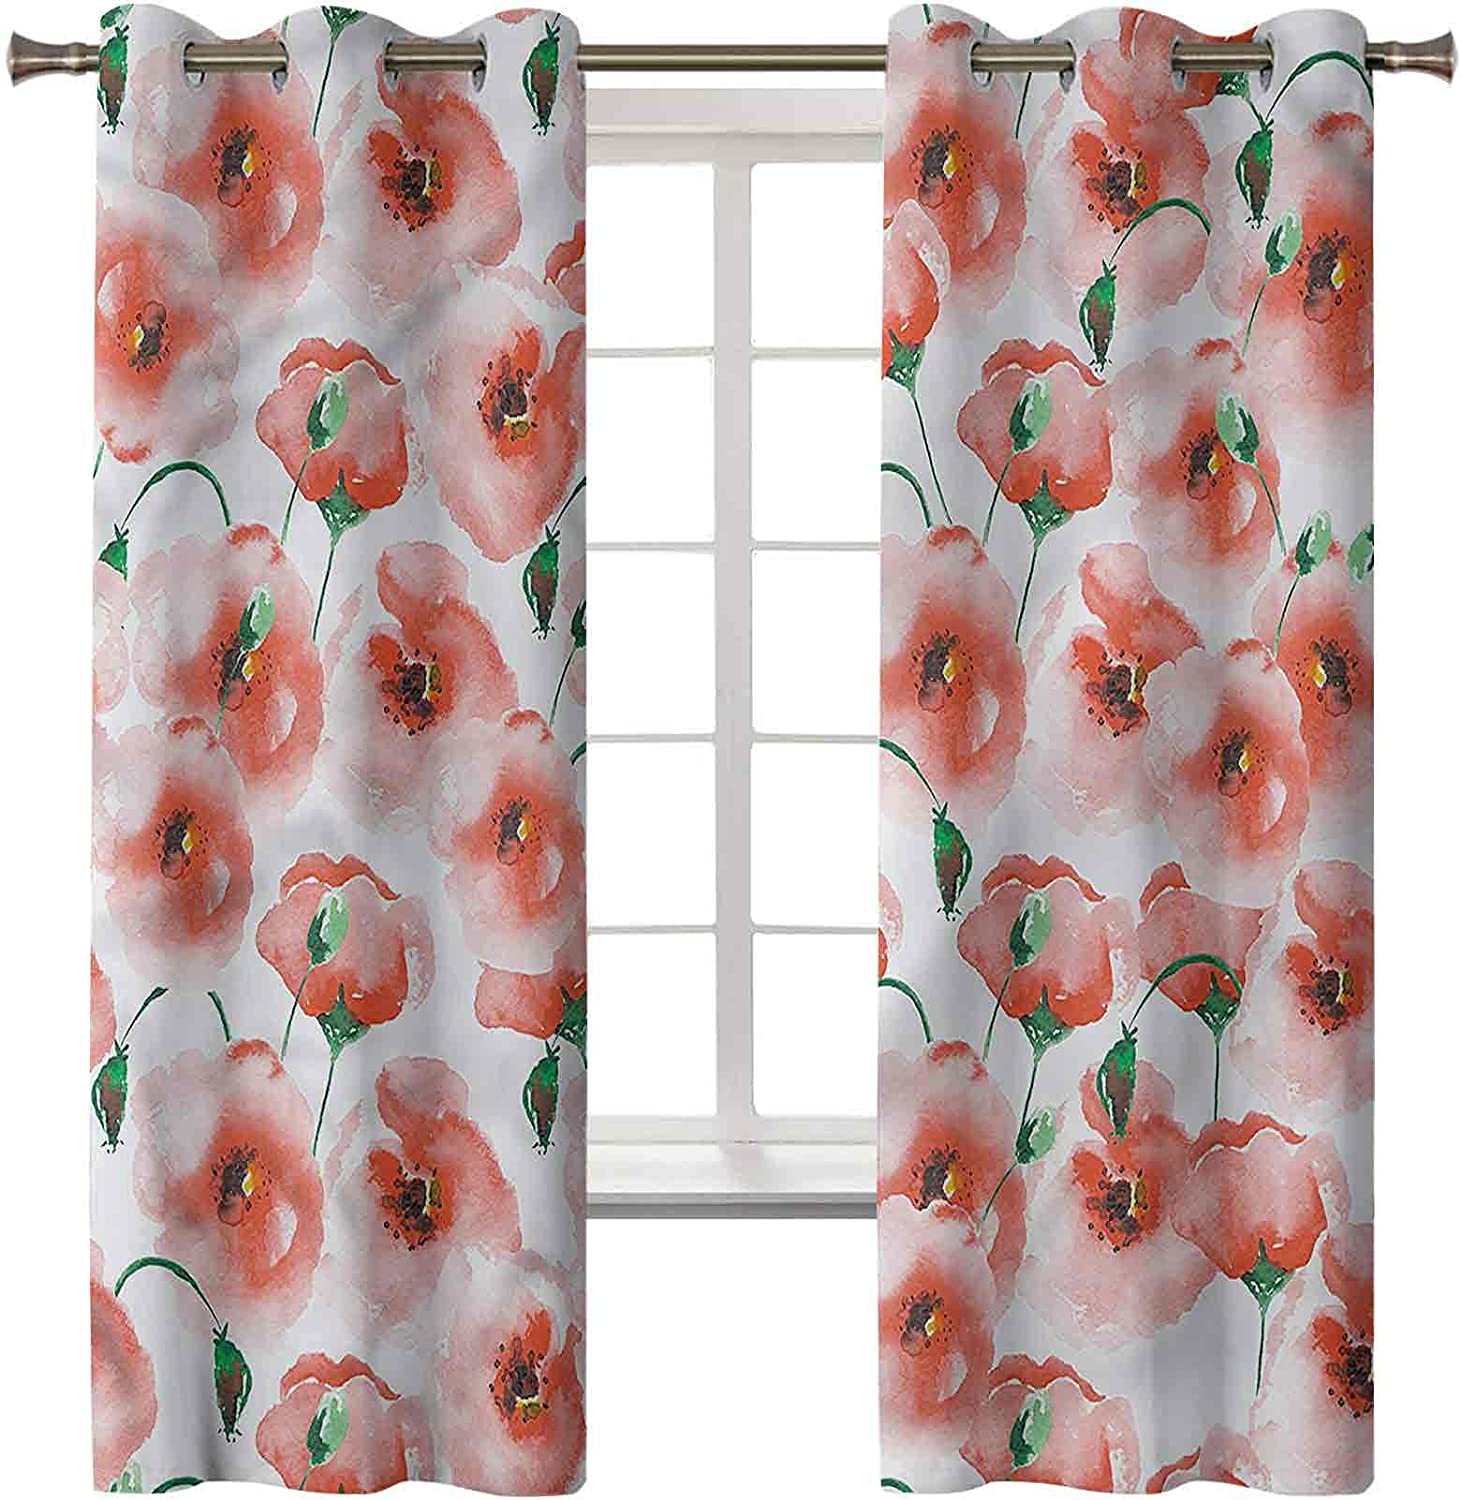 Blackout Latest item Curtains Thermal Max 48% OFF Insulated Drapes Reducing Noise Flowe